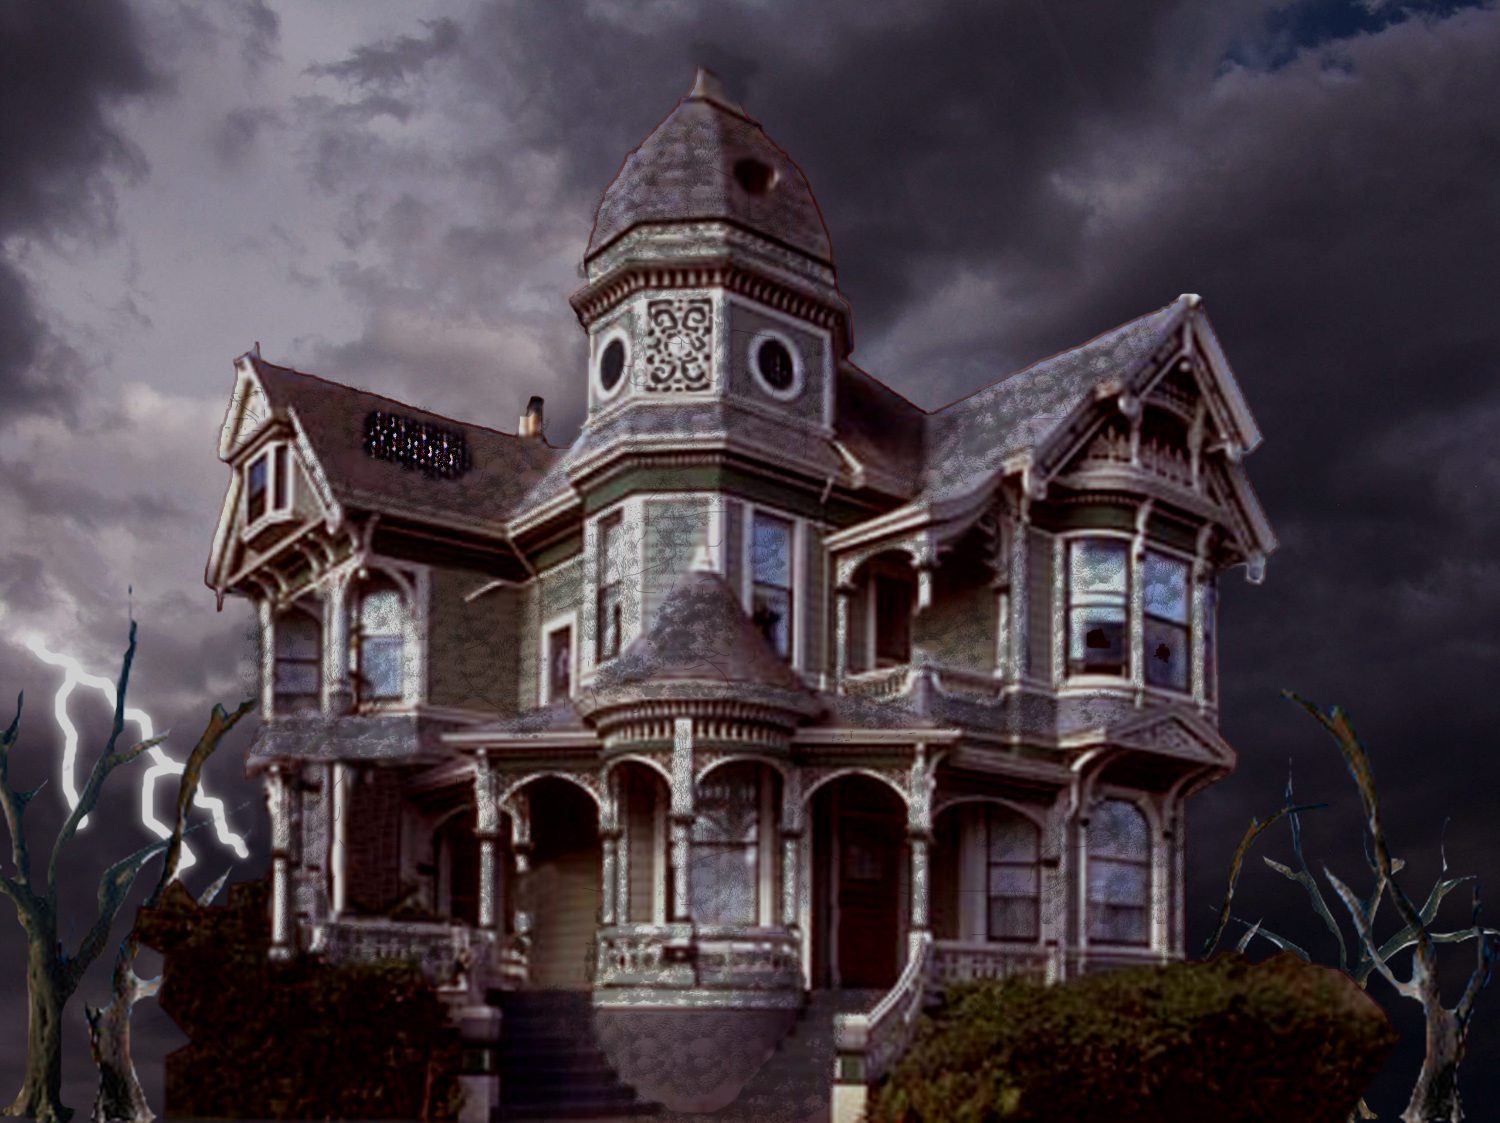 Haunted House Wallpaper Animated  scary haunted house free 1500x1123